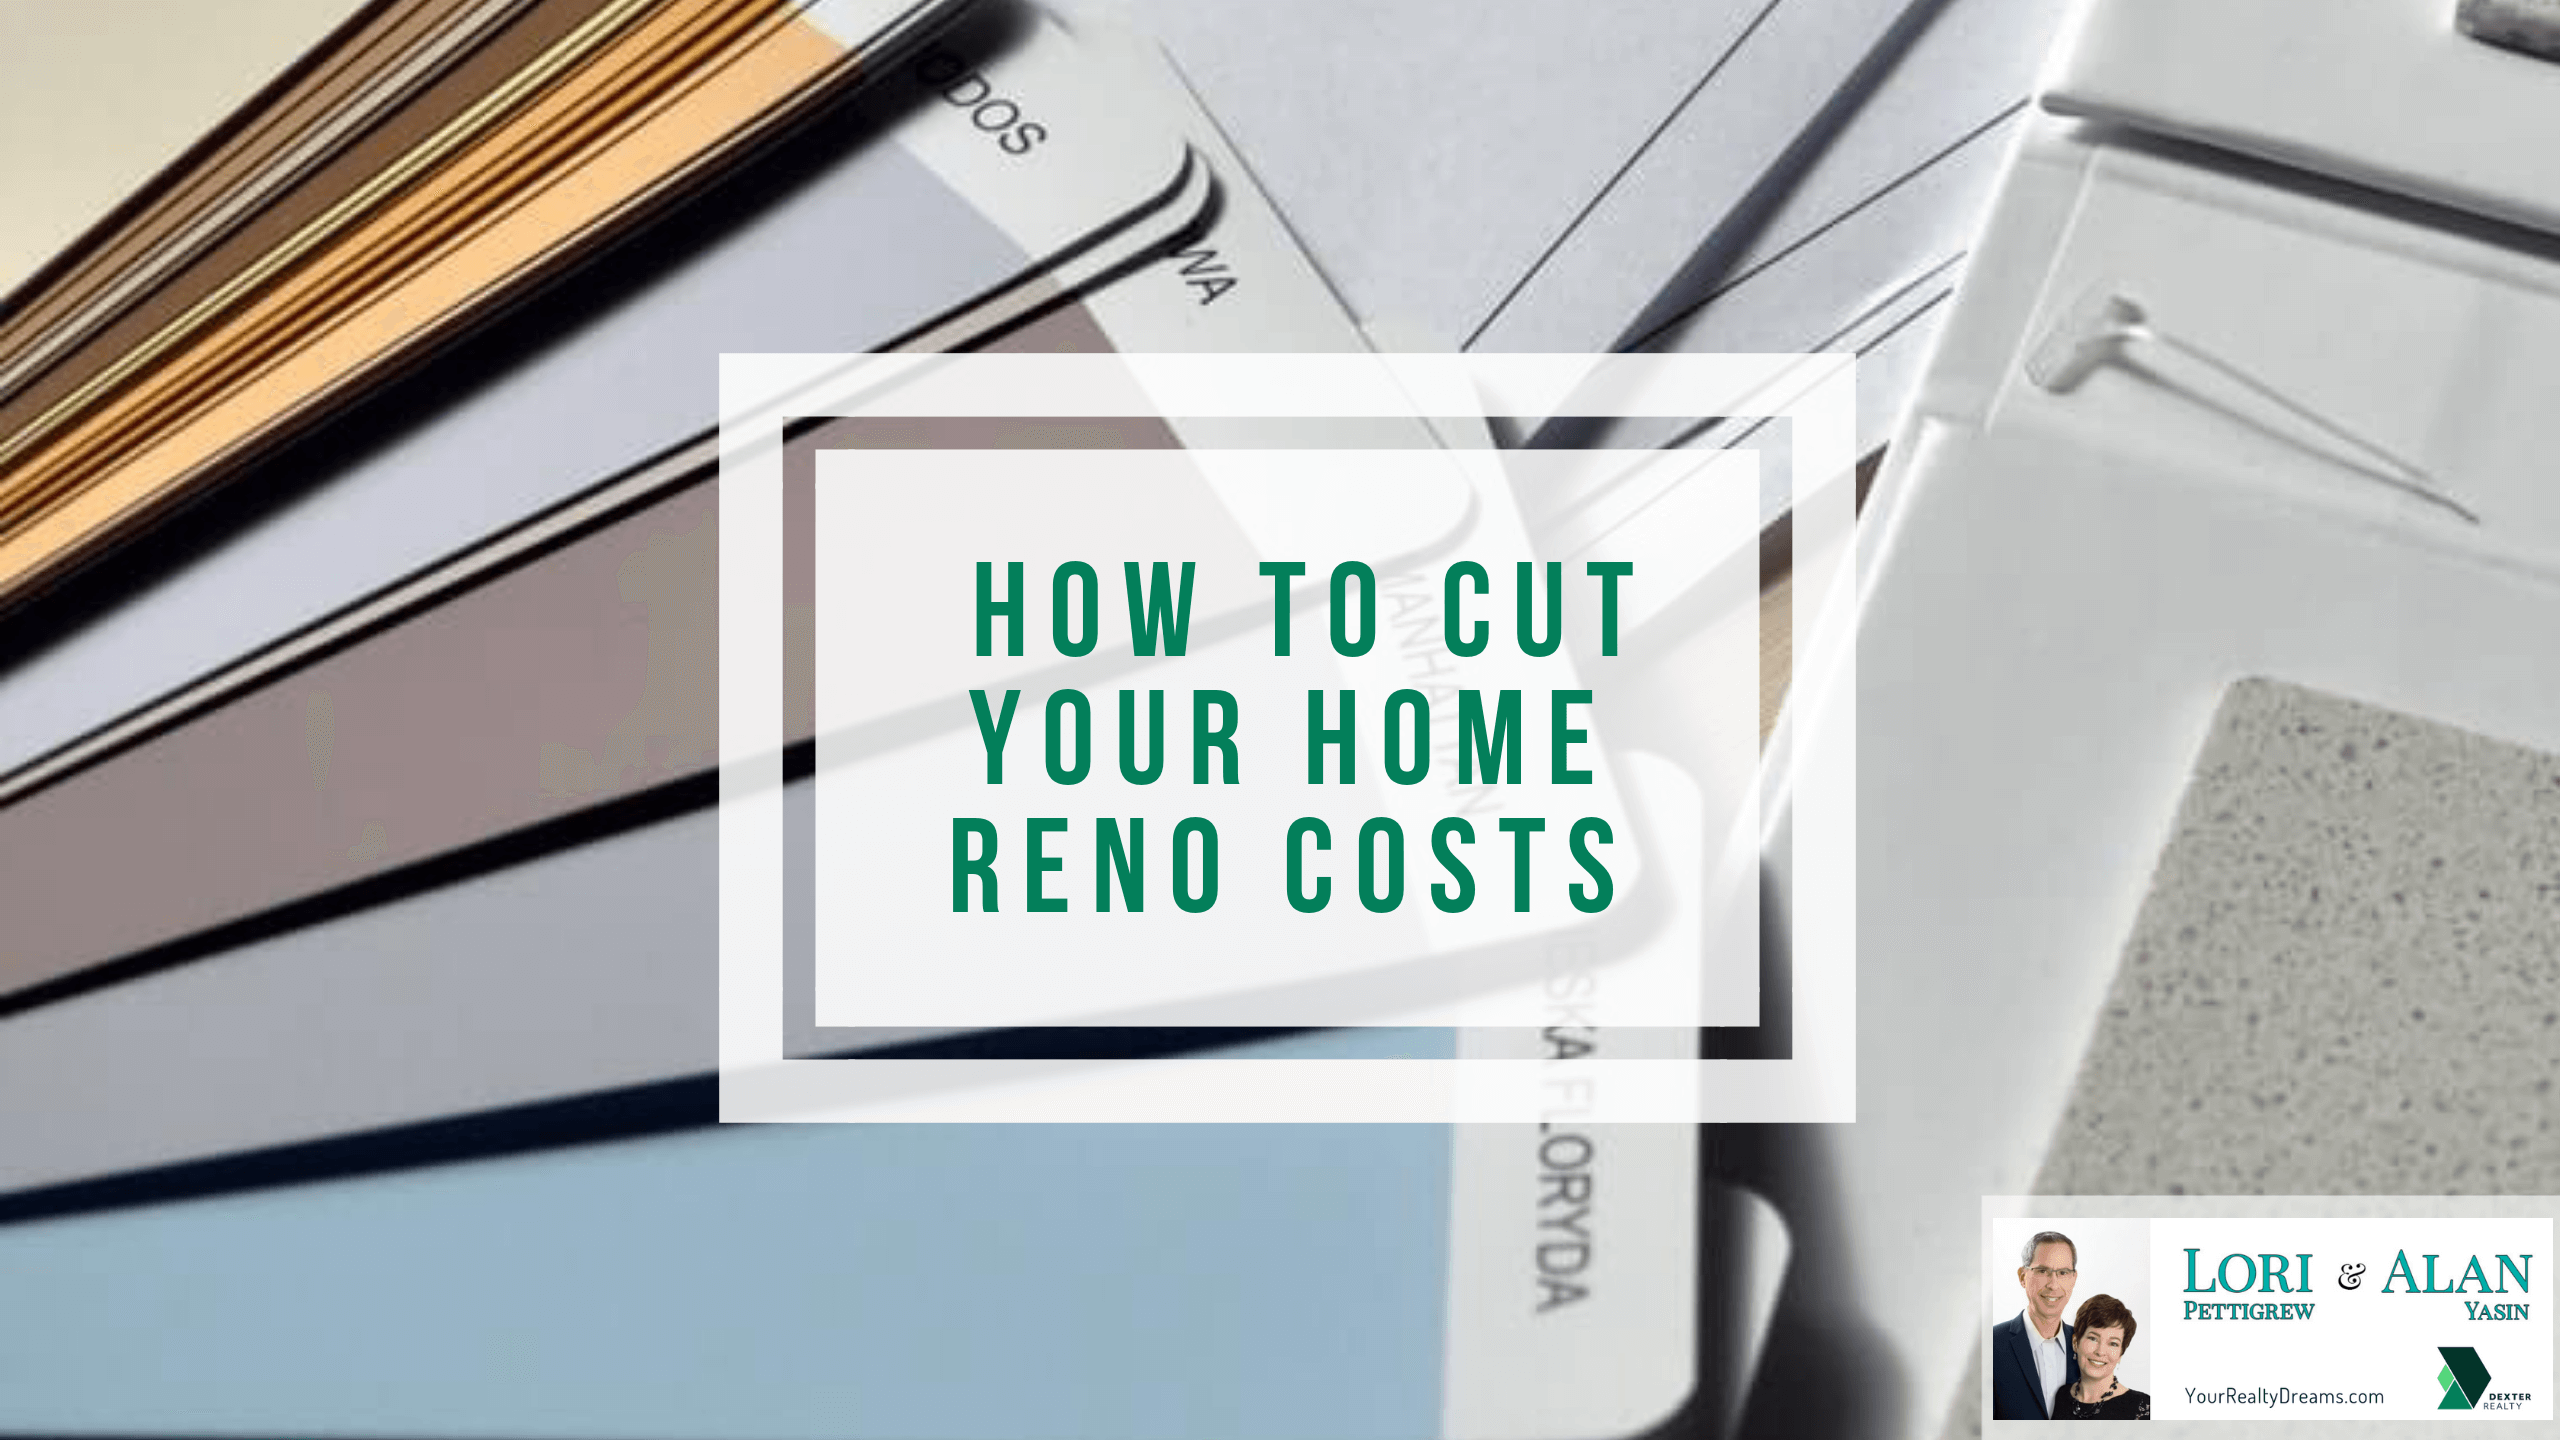 How to Cut Home Renovation Costs